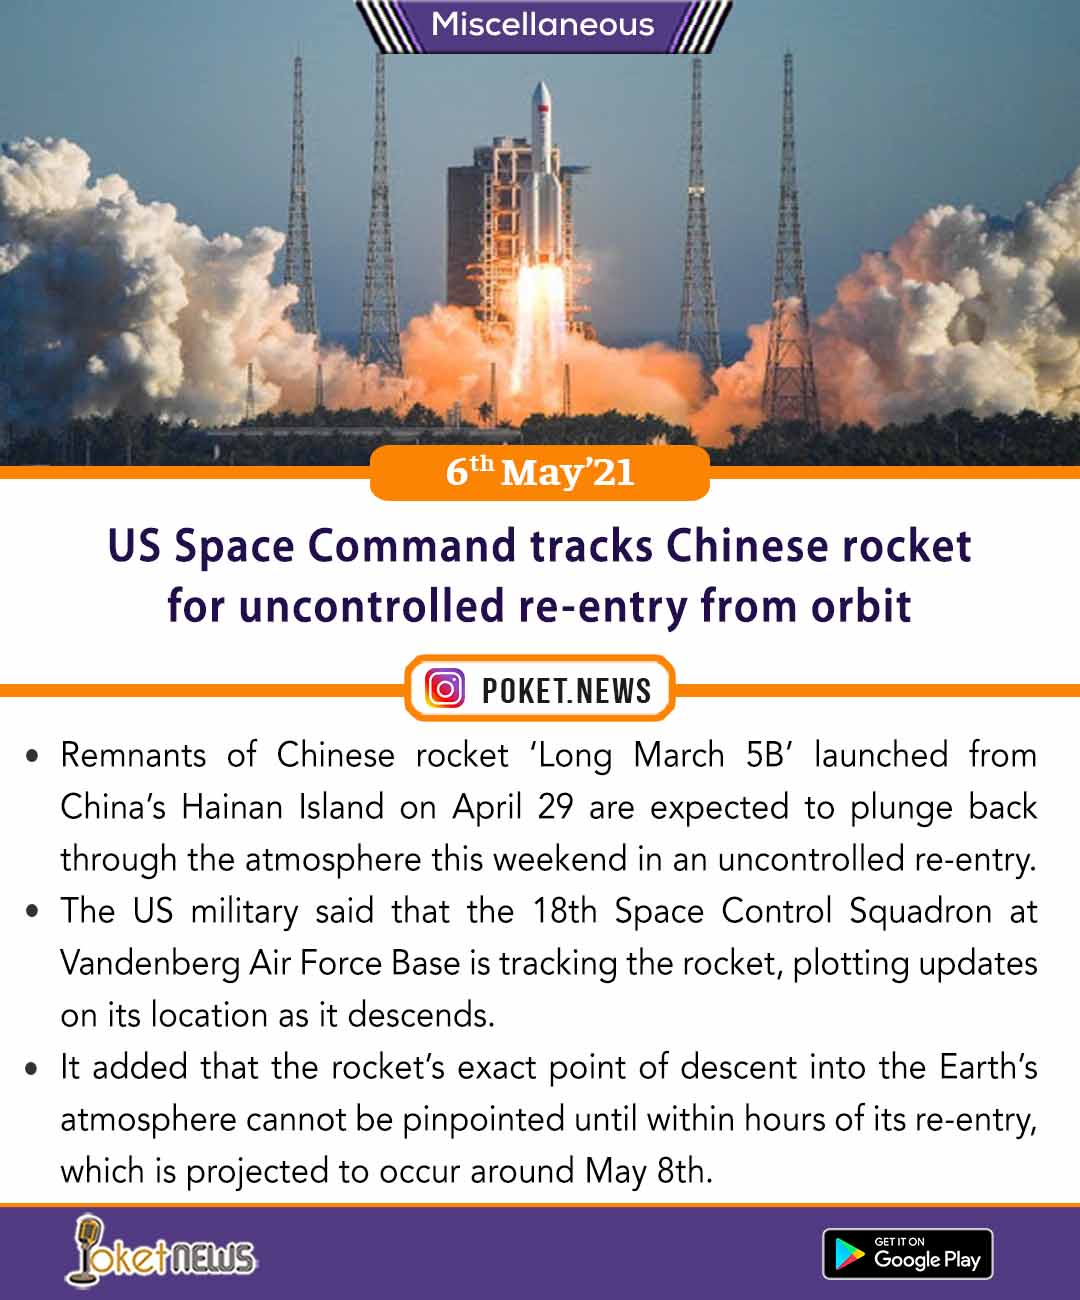 US Space Command tracks Chinese rocket for uncontrolled re-entry from orbit